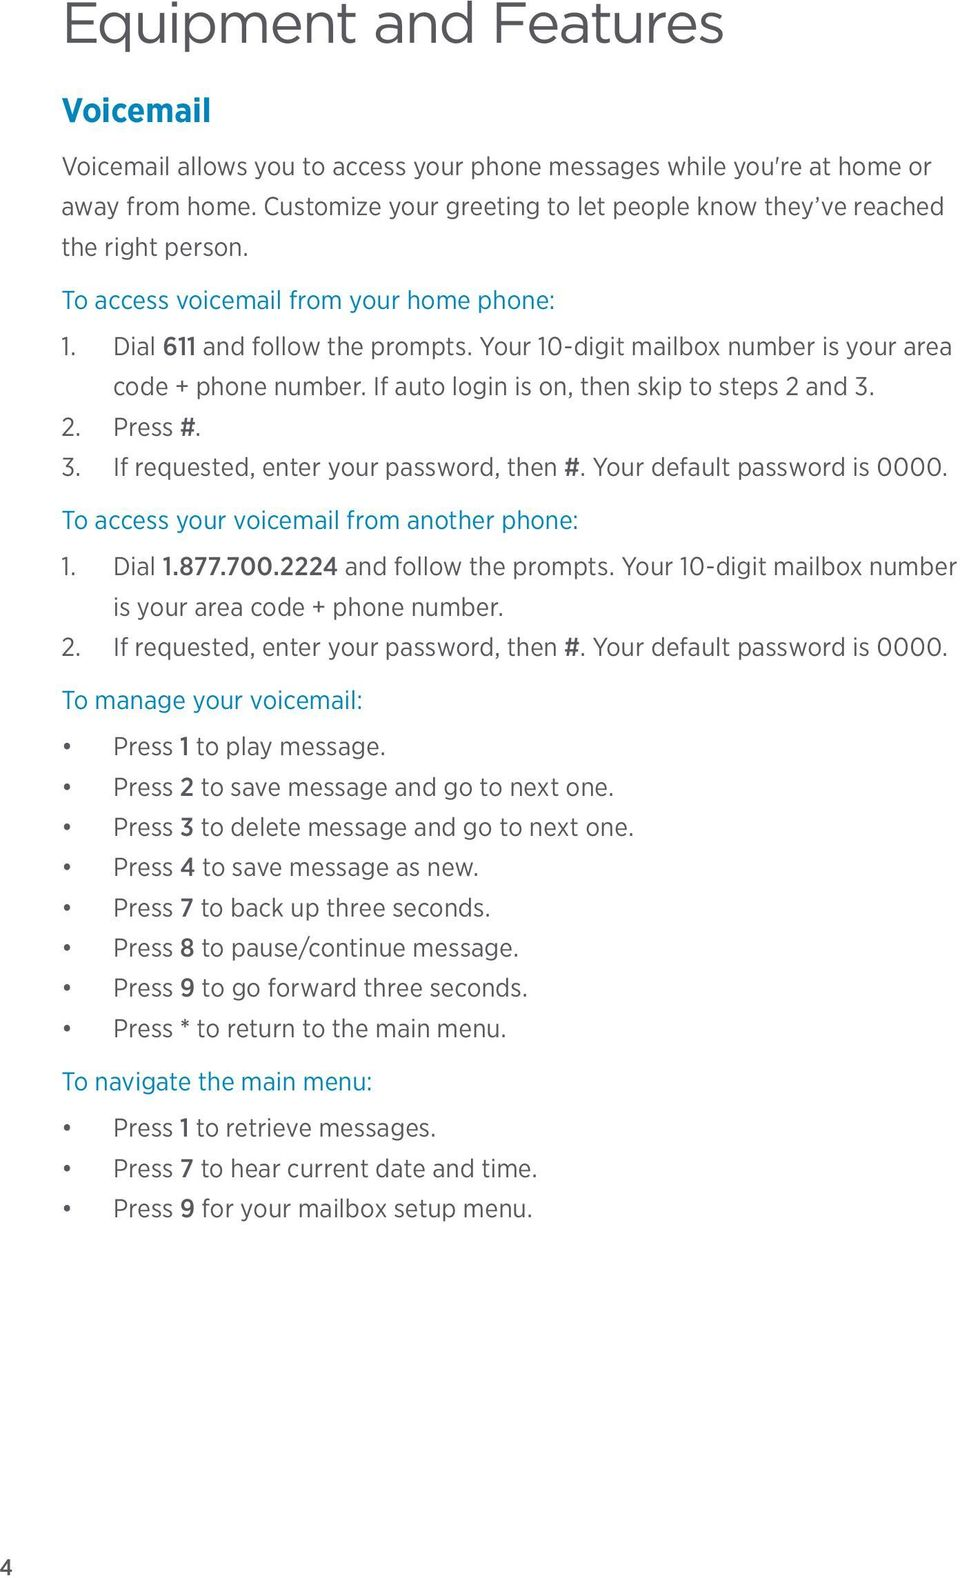 3. If requested, enter your password, then #. Your default password is 0000. To access your voicemail from another phone: 1. Dial 1.877.700.2224 and follow the prompts.